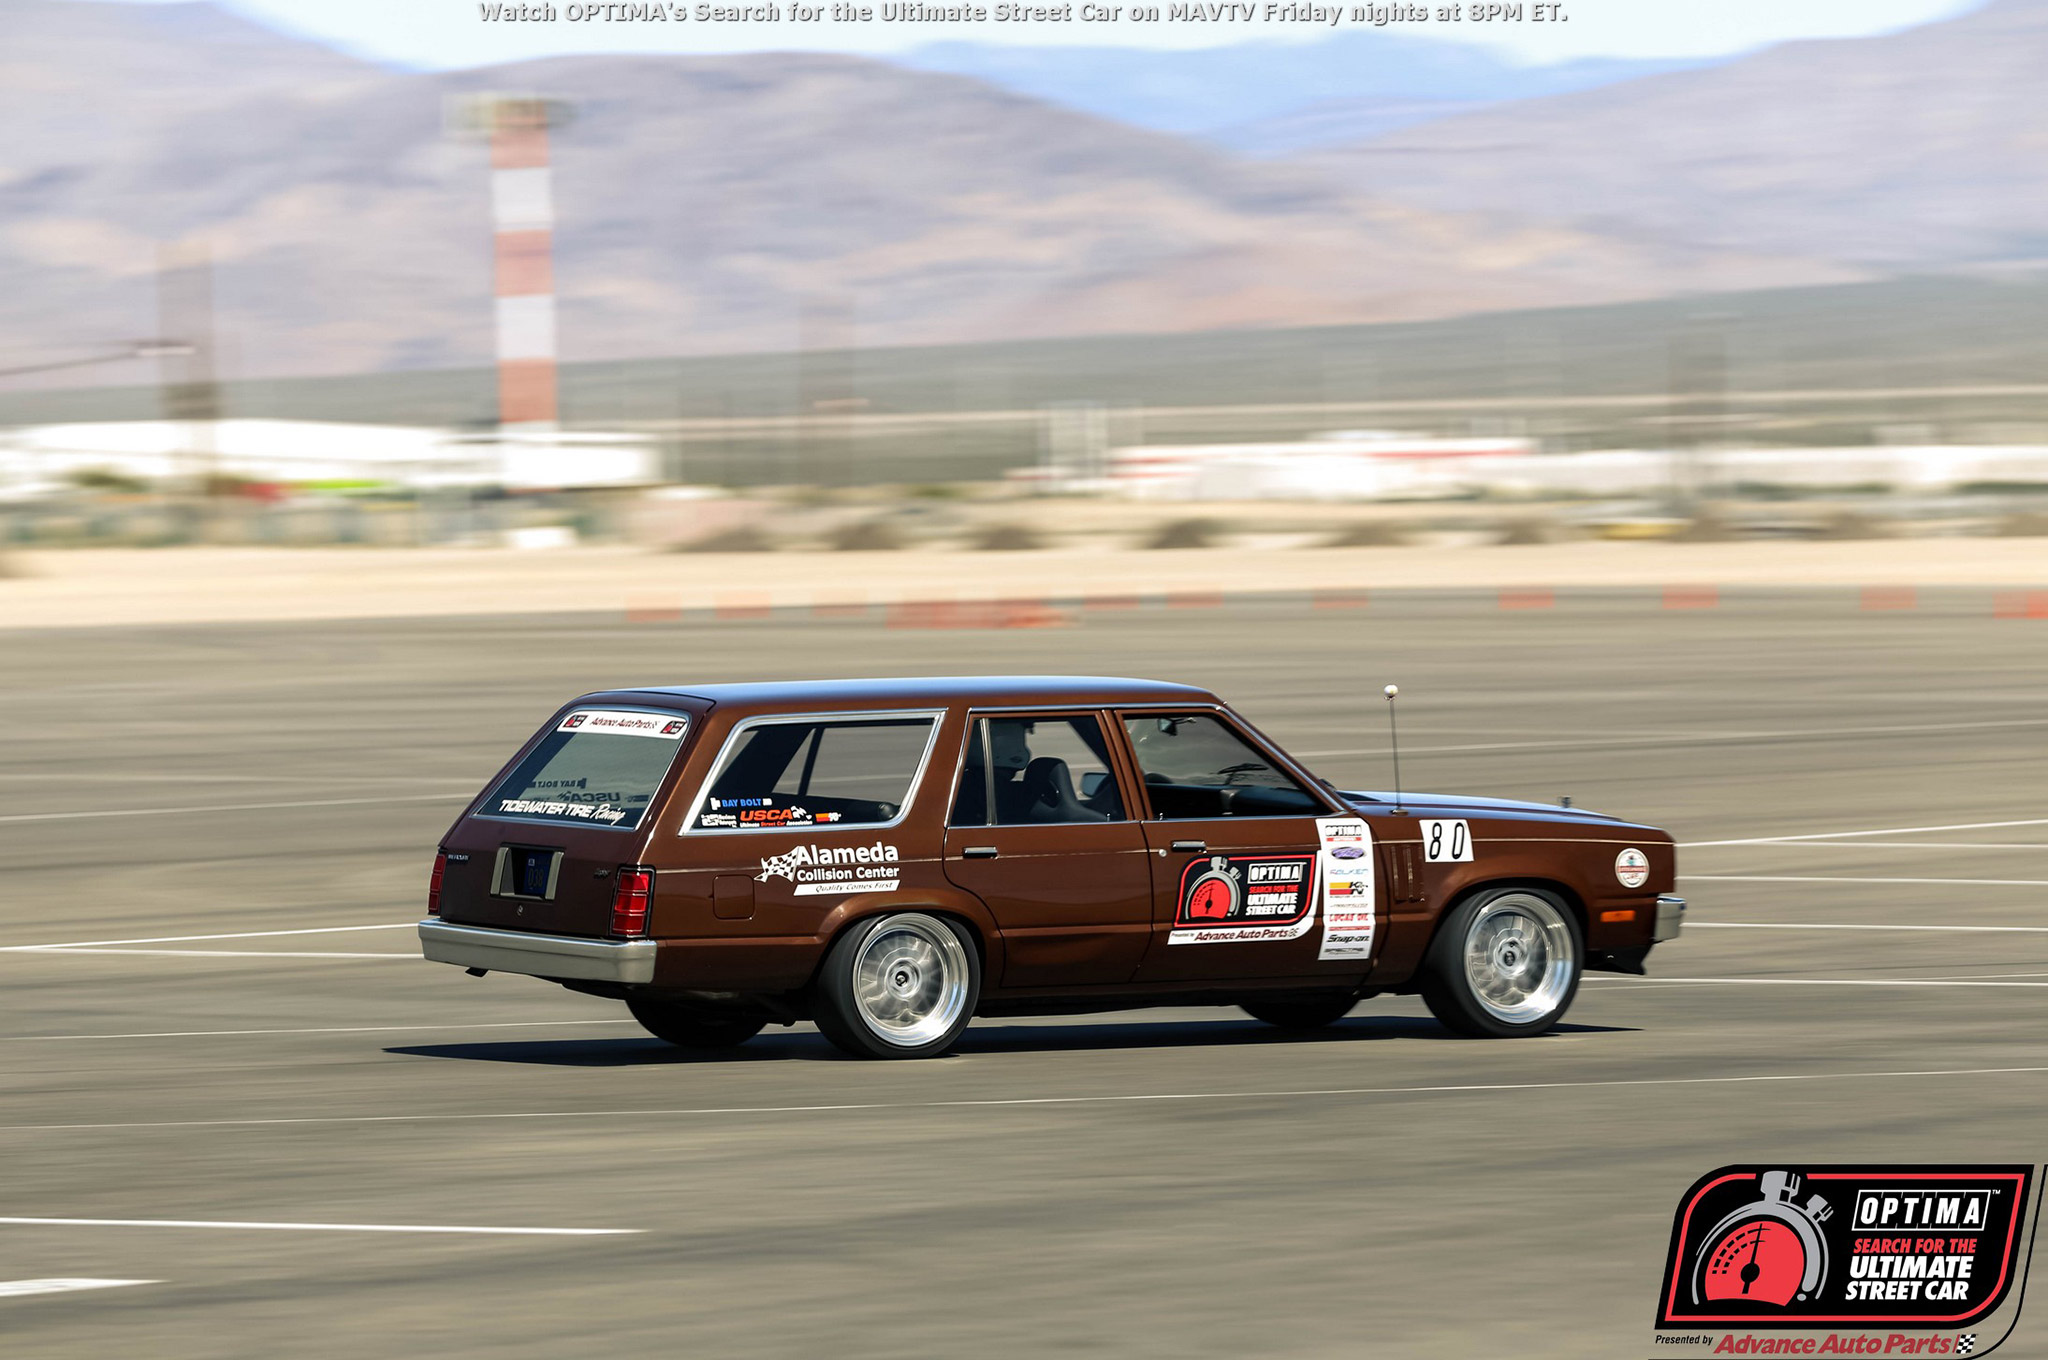 Martin Pond added weight to his 1980 Mercury Zephyr to make sure he could run in the vintage class and did so in the first two events of the year. So far, his strategy is serving him well, as he still holds fifth place in his class and is on track with points to earn an invitation to Las Vegas.